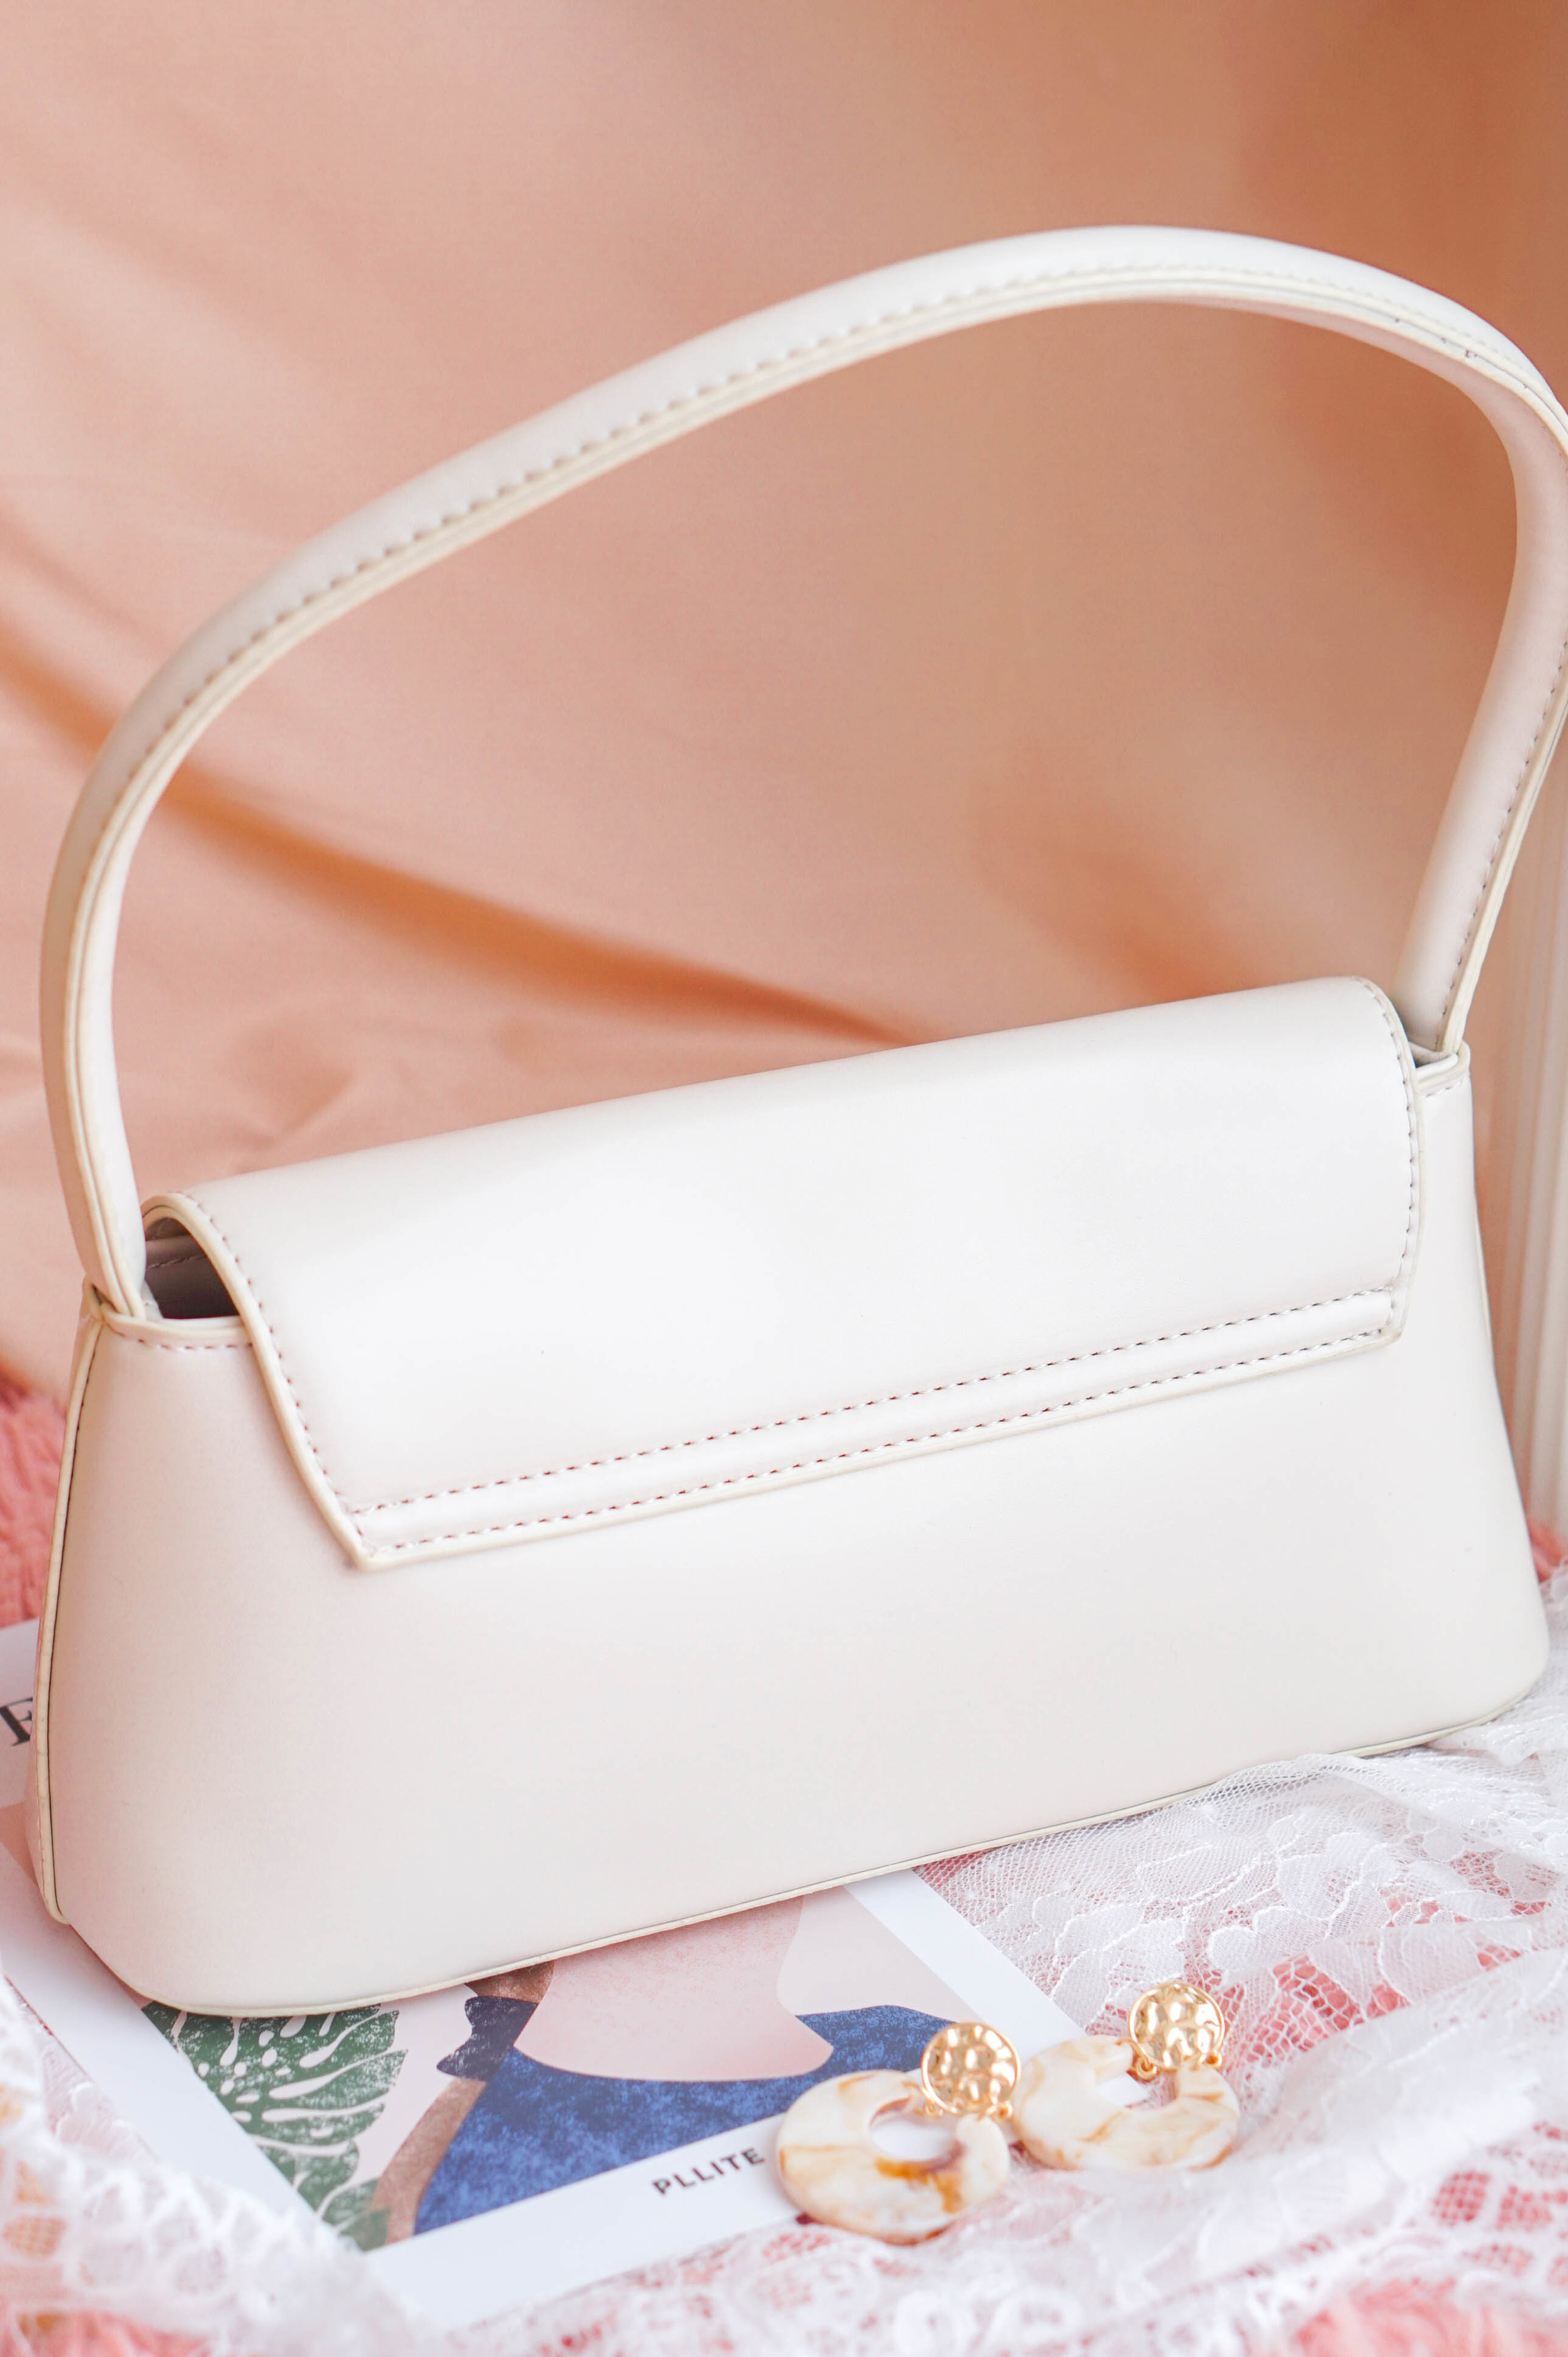 SMOL // See You In Paris Bag in White